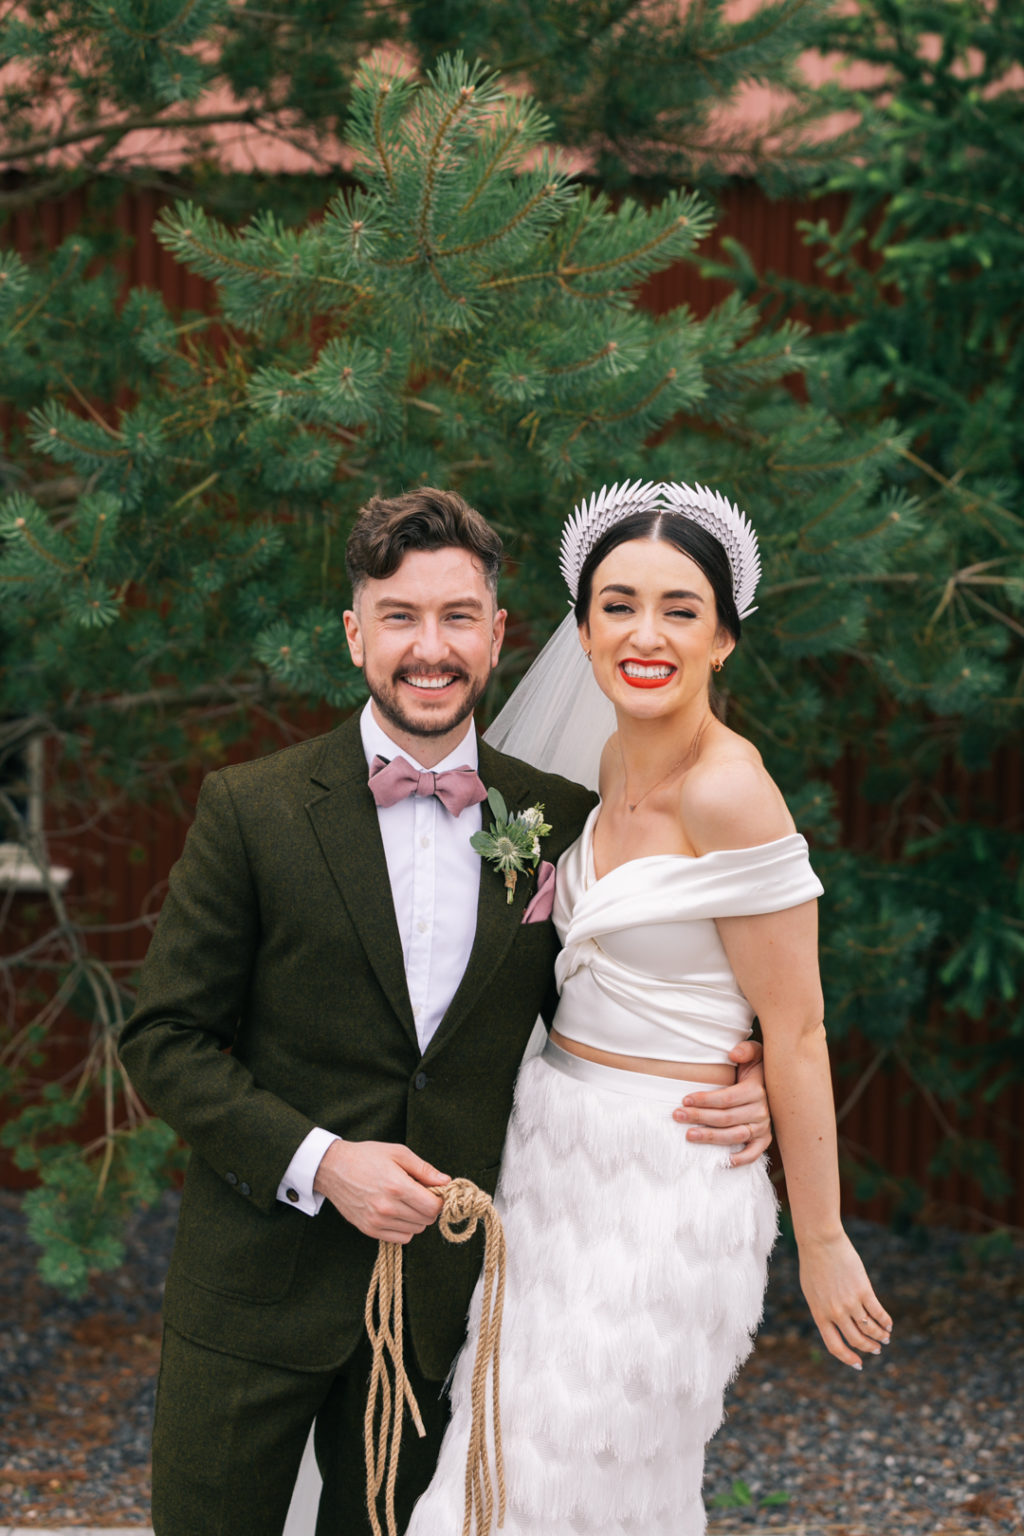 The groom was wearing a woolen suit, a white shirt and a dusty pink bow tie